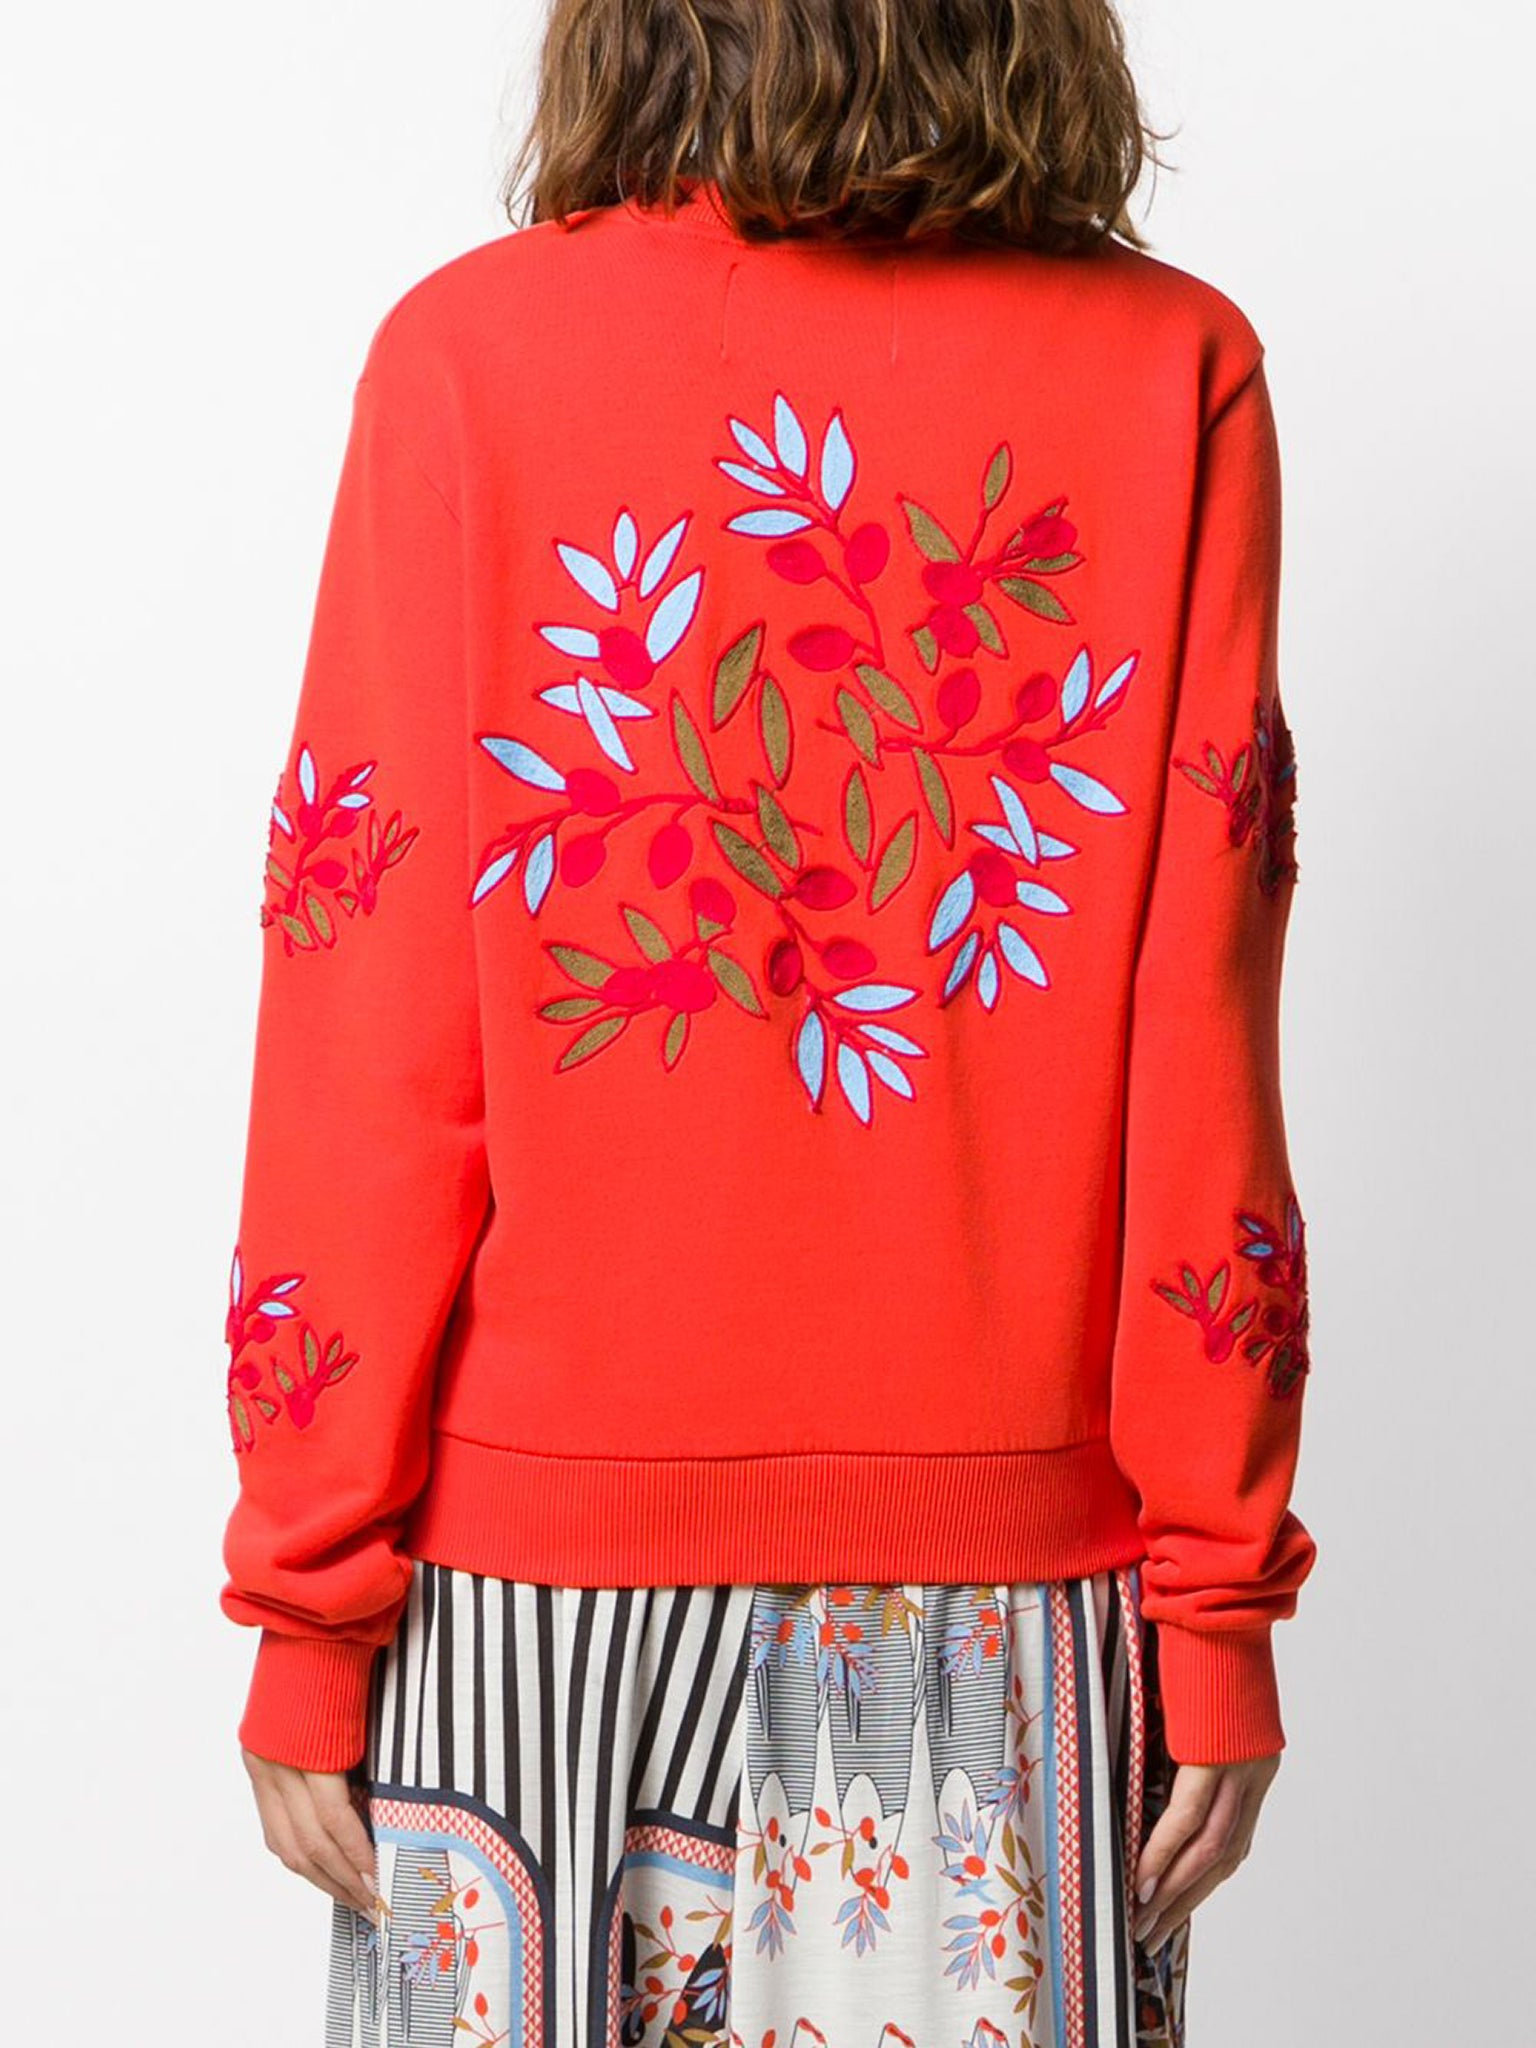 Henrik Vibskov Flower round neck sweatshirt red